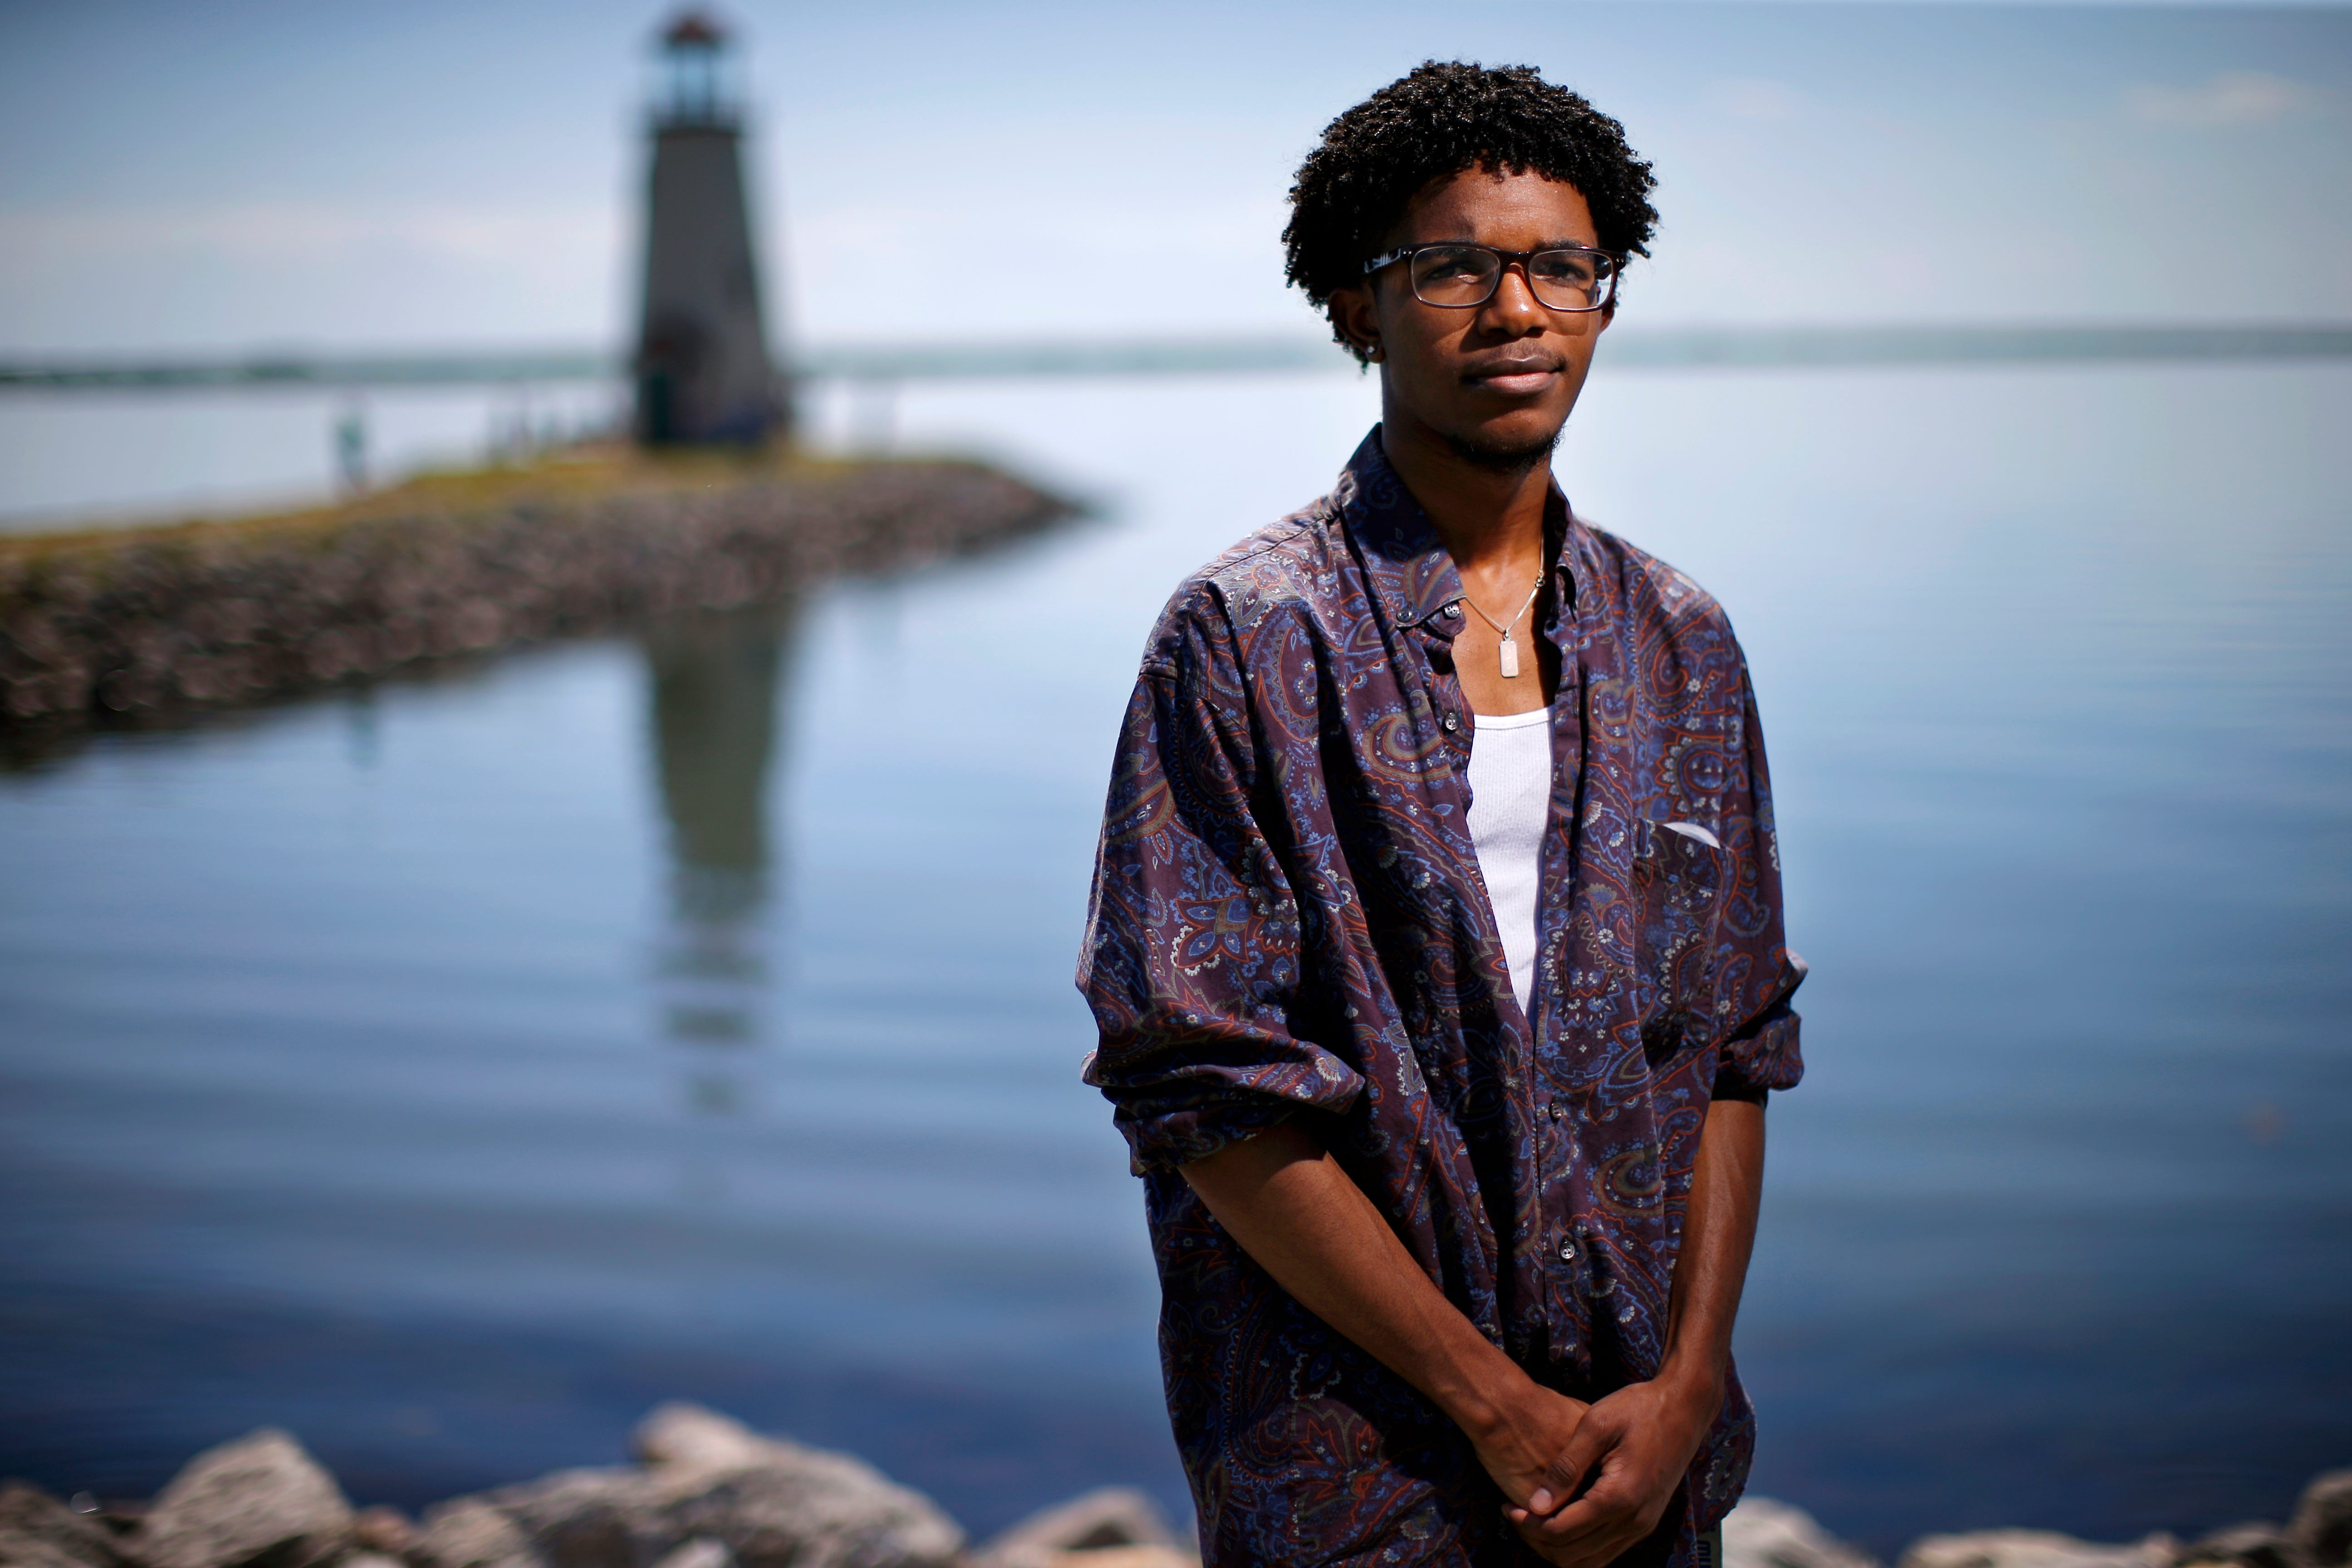 These Black teens are turning 18 in Tamir Rice's America